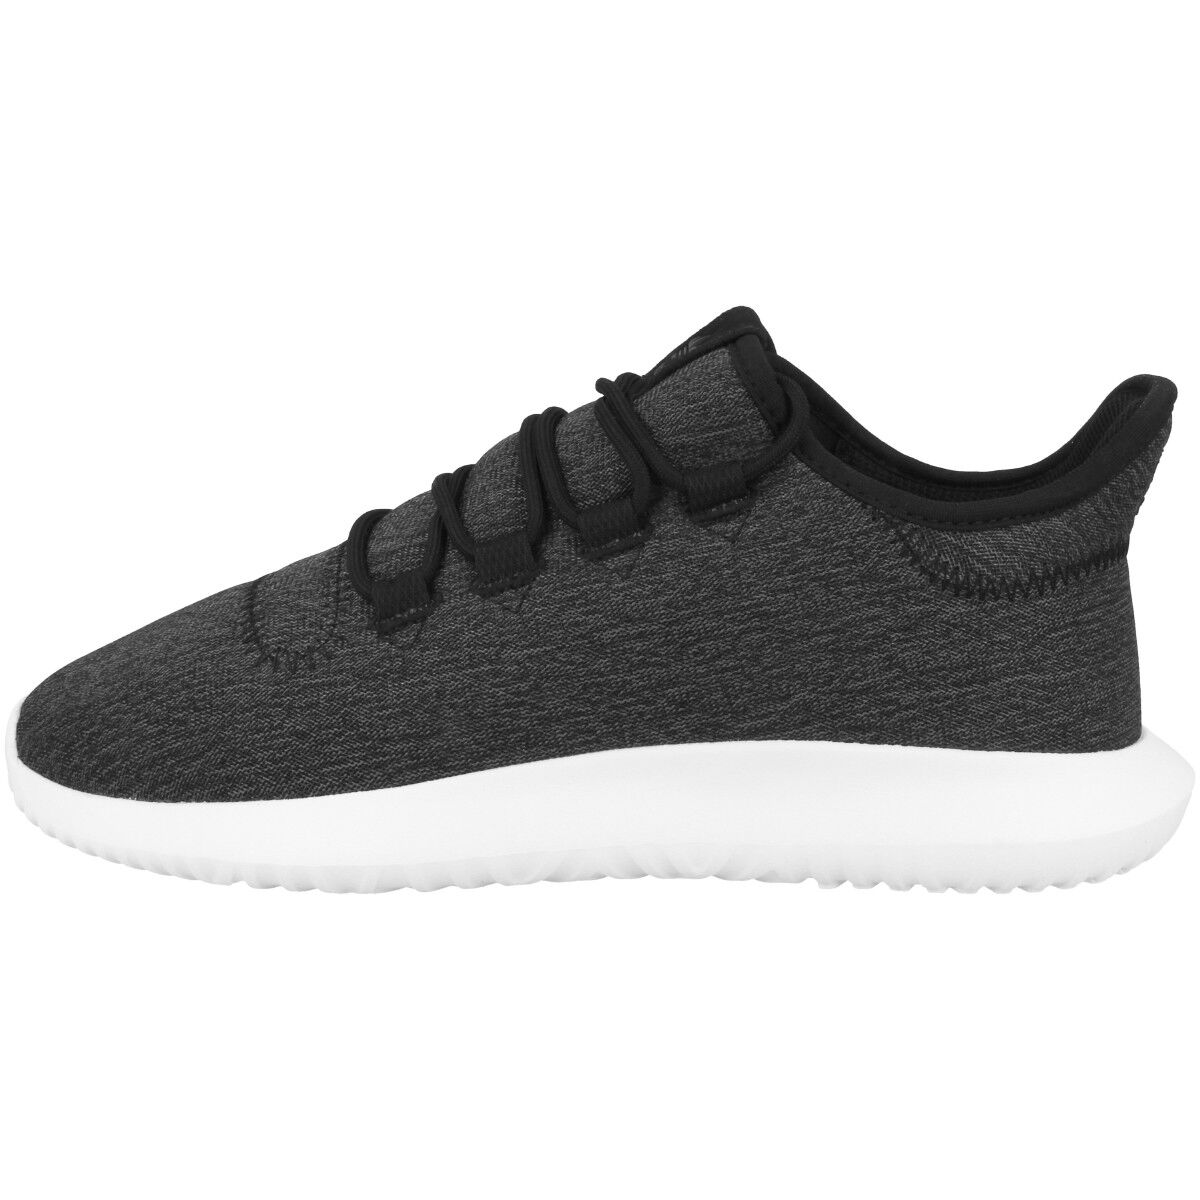 Zapatos promocionales para hombres y mujeres Adidas Tubular Shadow Women Schuhe Runner Sneaker Laufschuhe black white CQ2460